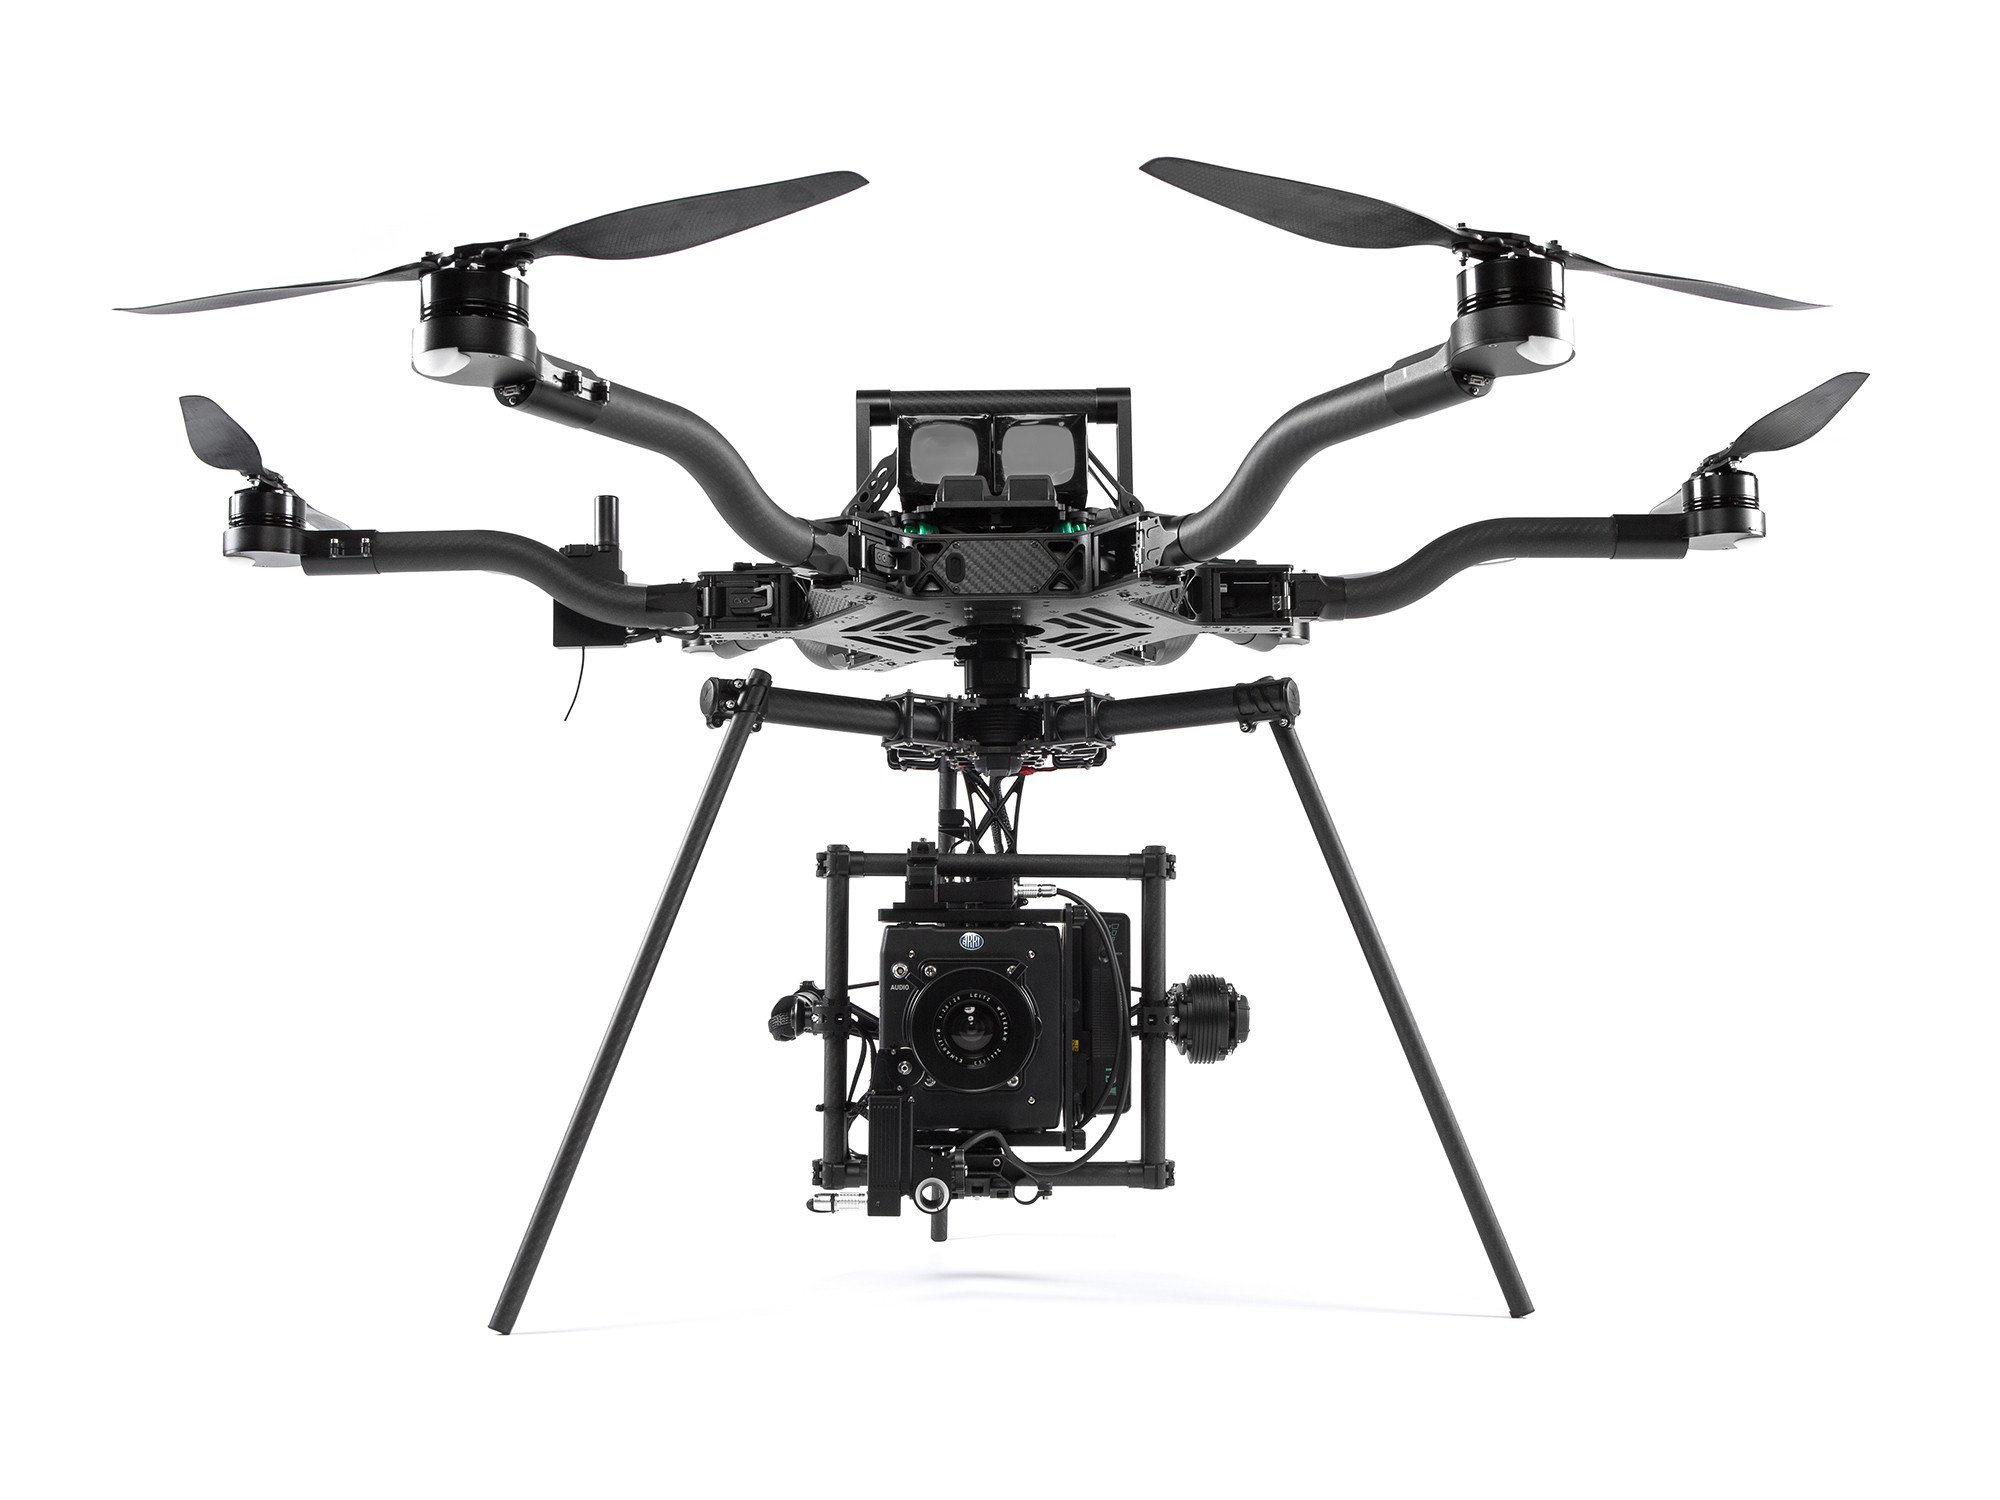 Top Gas Powered Drones 3 Best Gasoline Drones For Sale